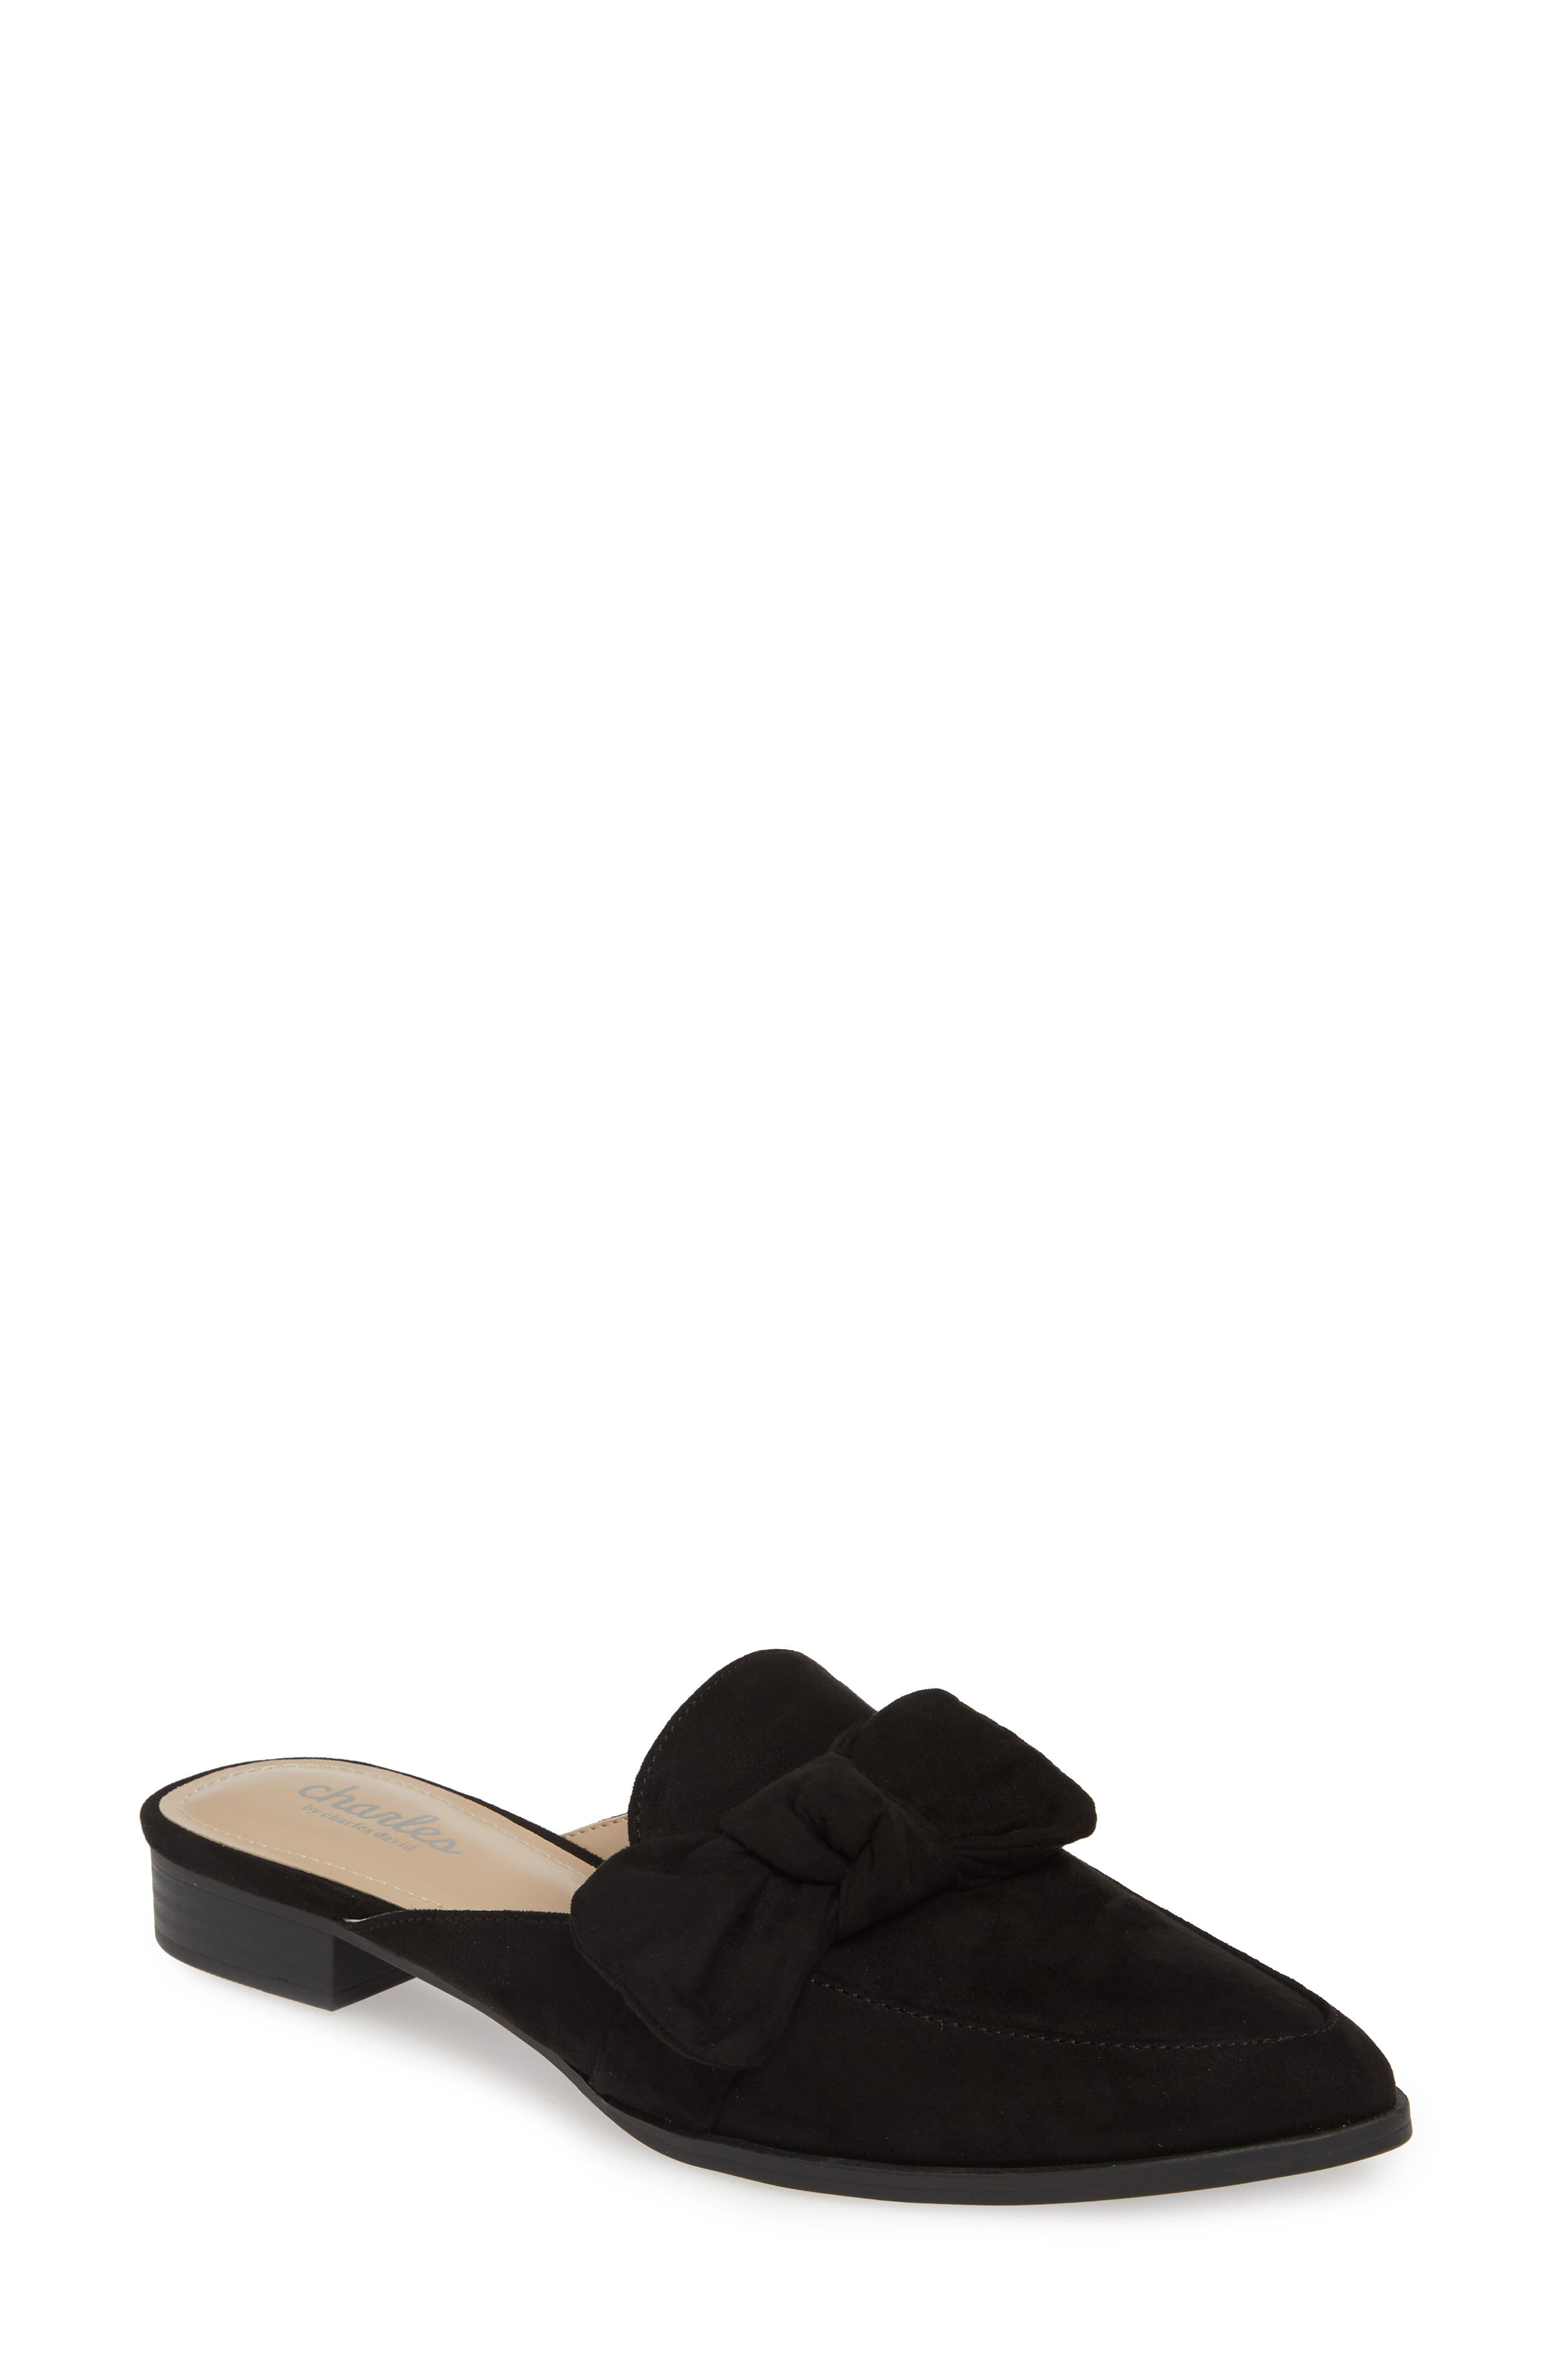 CHARLES BY CHARLES DAVID, Essence Mule, Main thumbnail 1, color, BLACK FABRIC